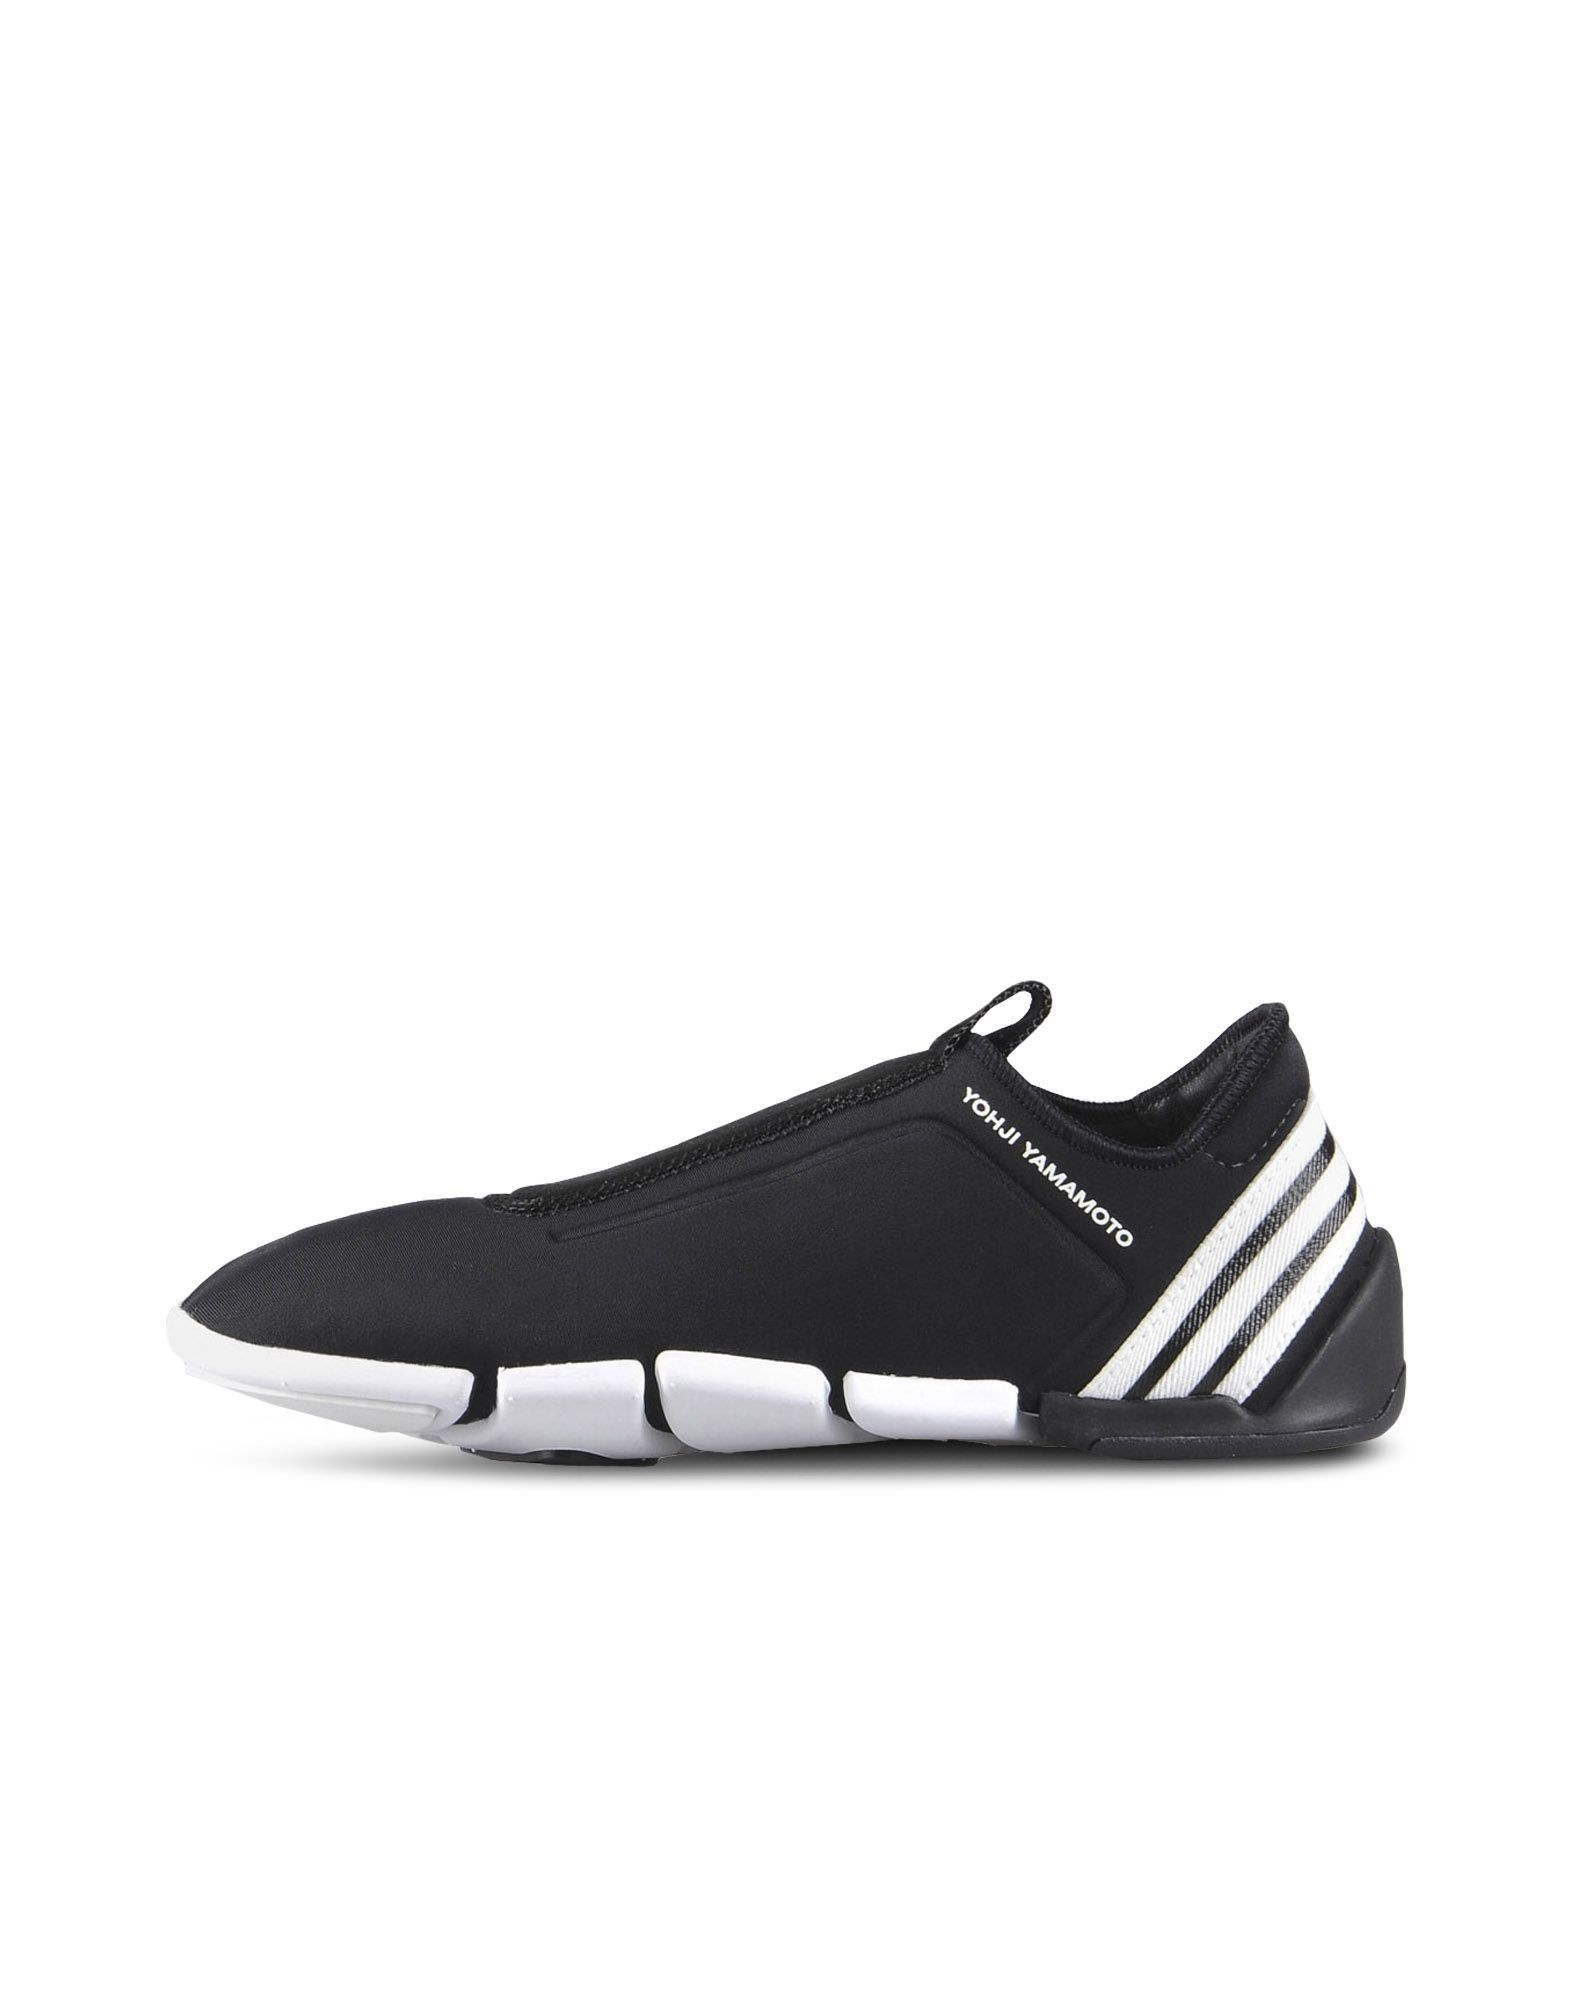 adidas wide fit trainers